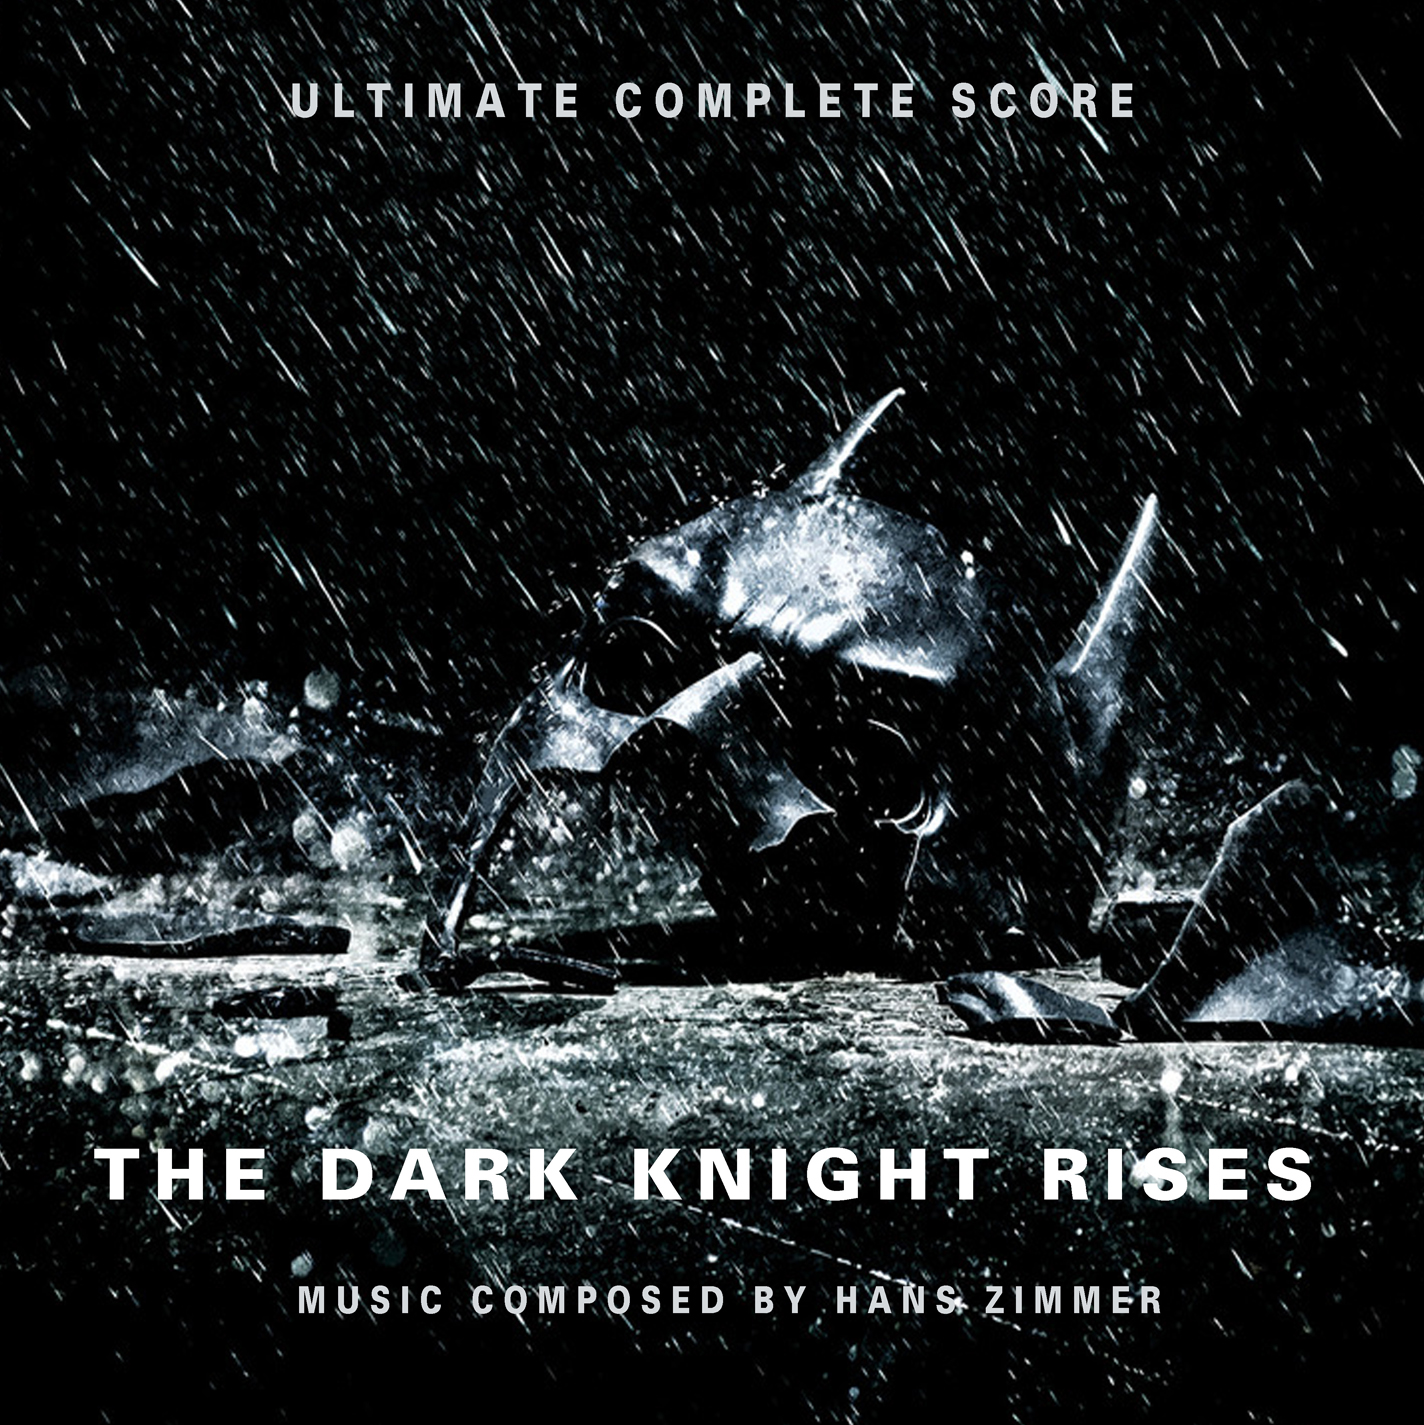 The Dark Knight Rises (Original Motion Picture Soundtrack